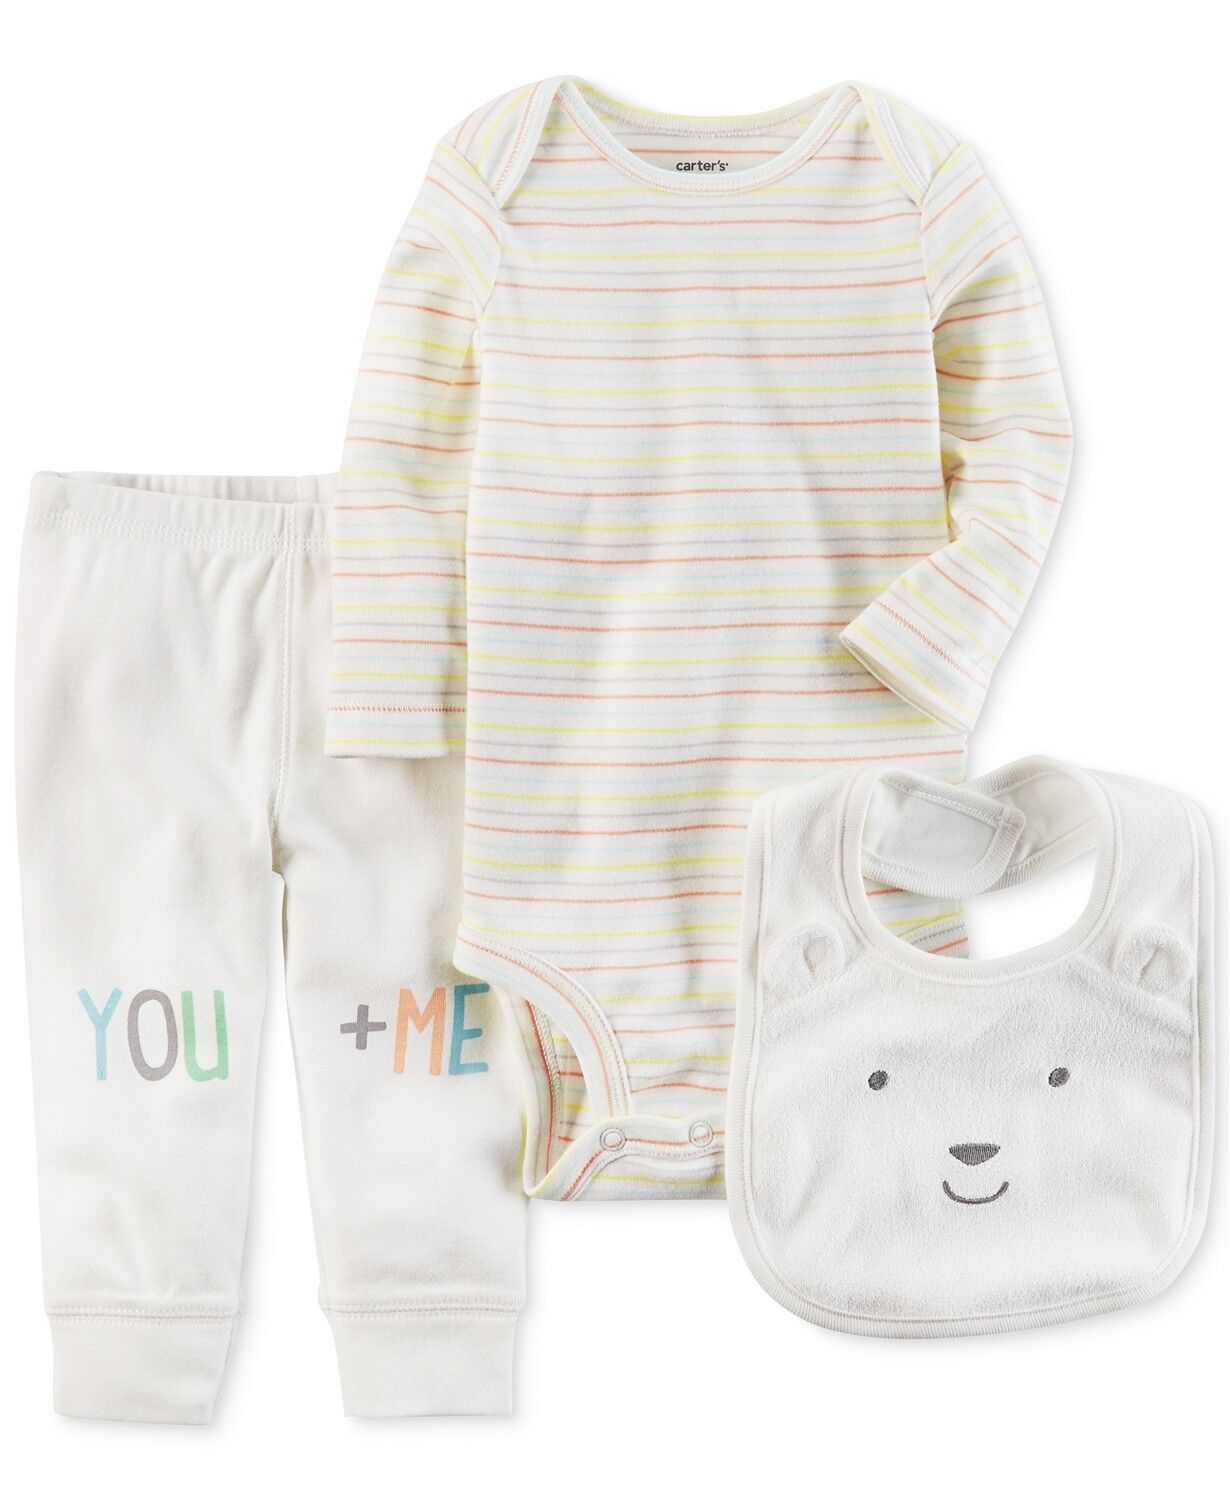 Carters Baby Girls 3-pc. You & Me Layette Set New